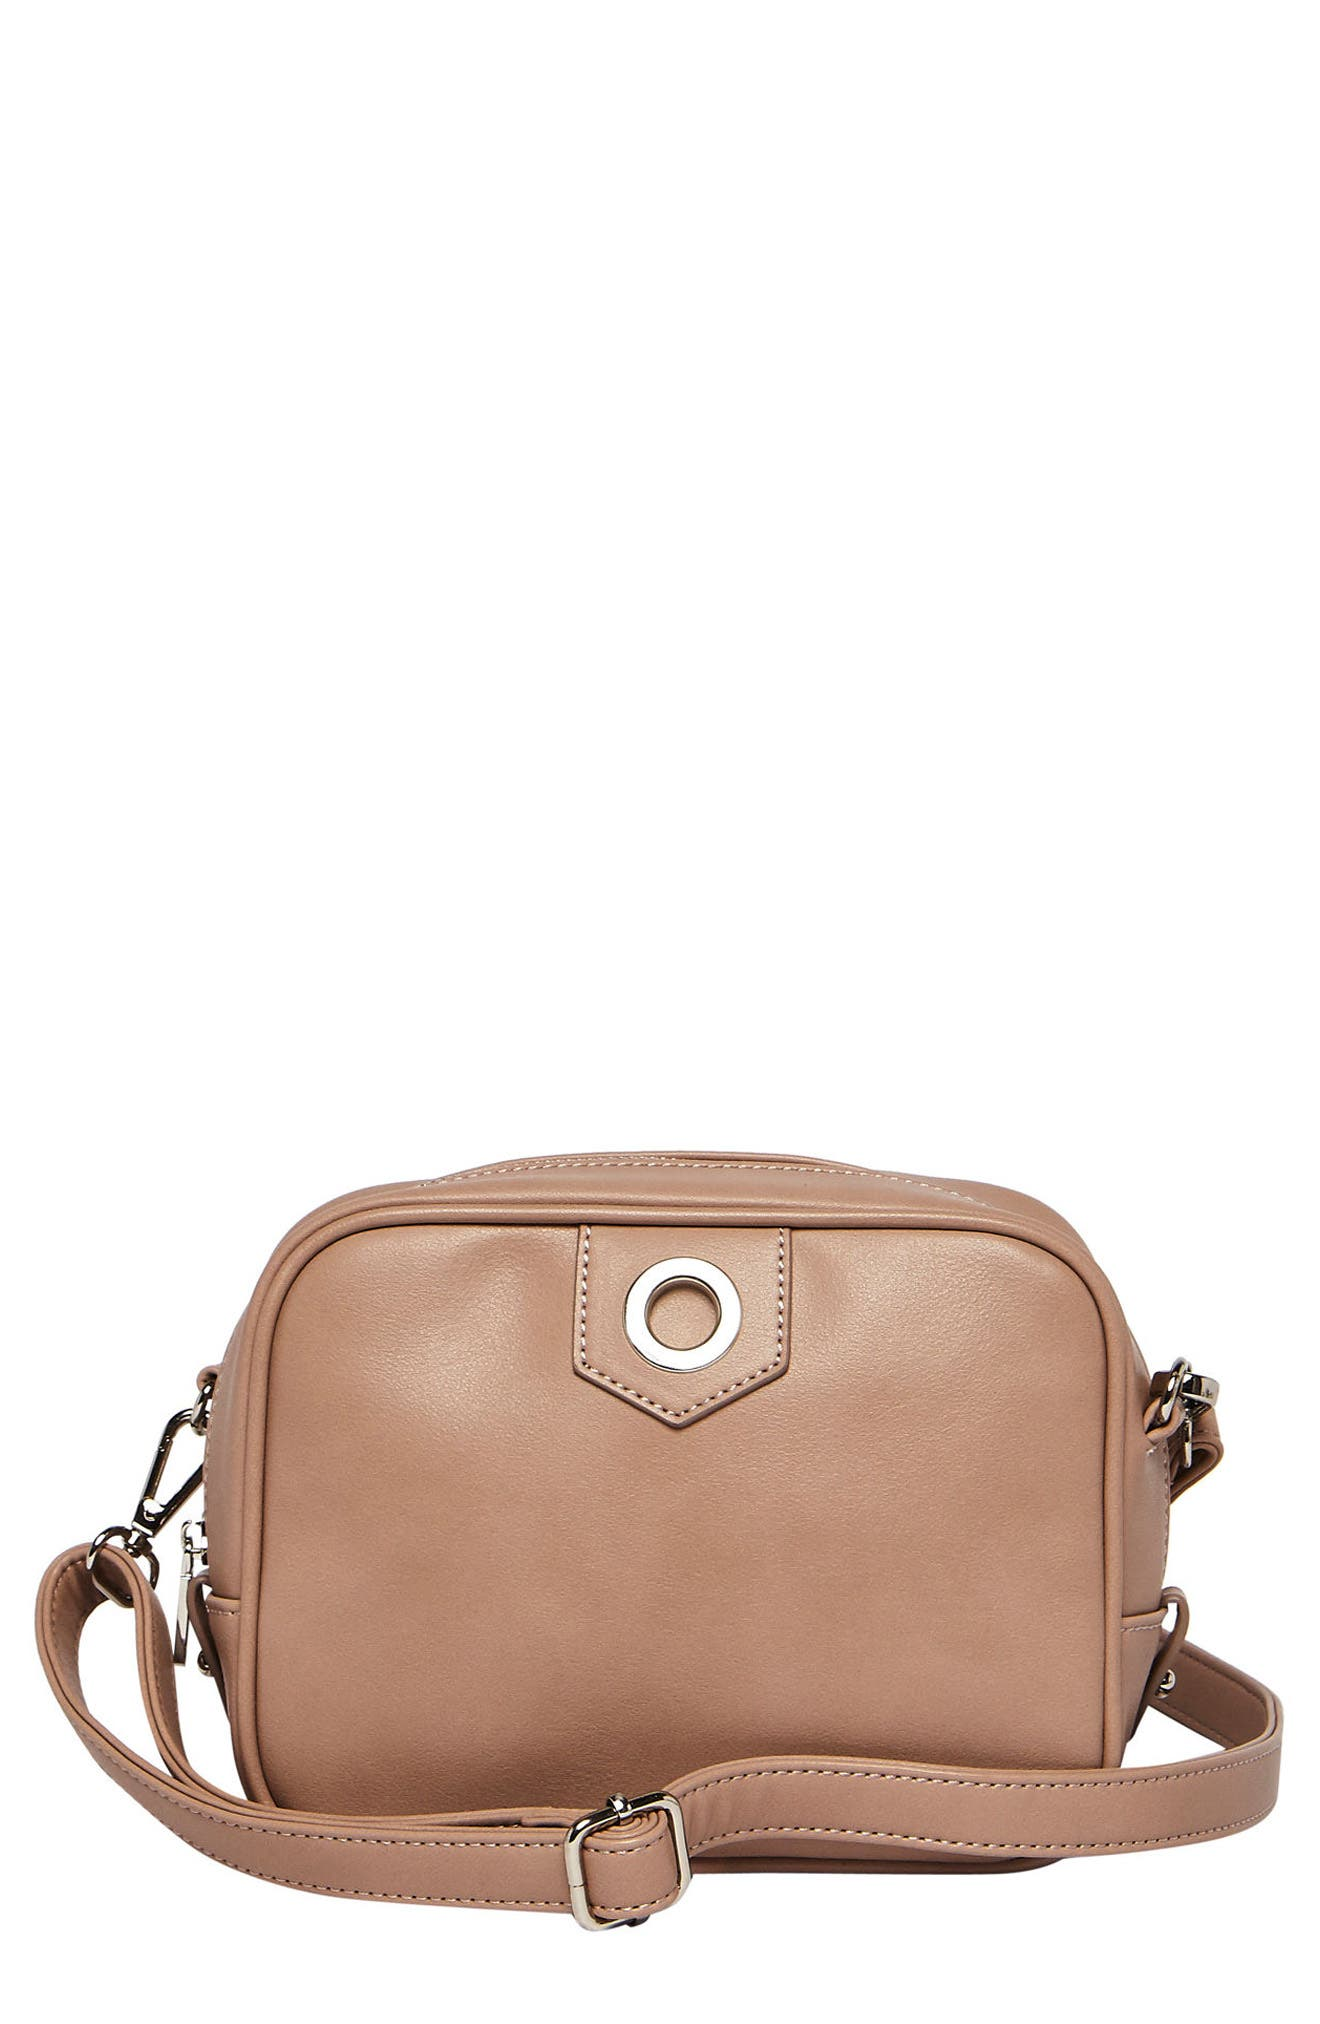 Dakota Vegan Leather Crossbody Bag,                         Main,                         color, Nude